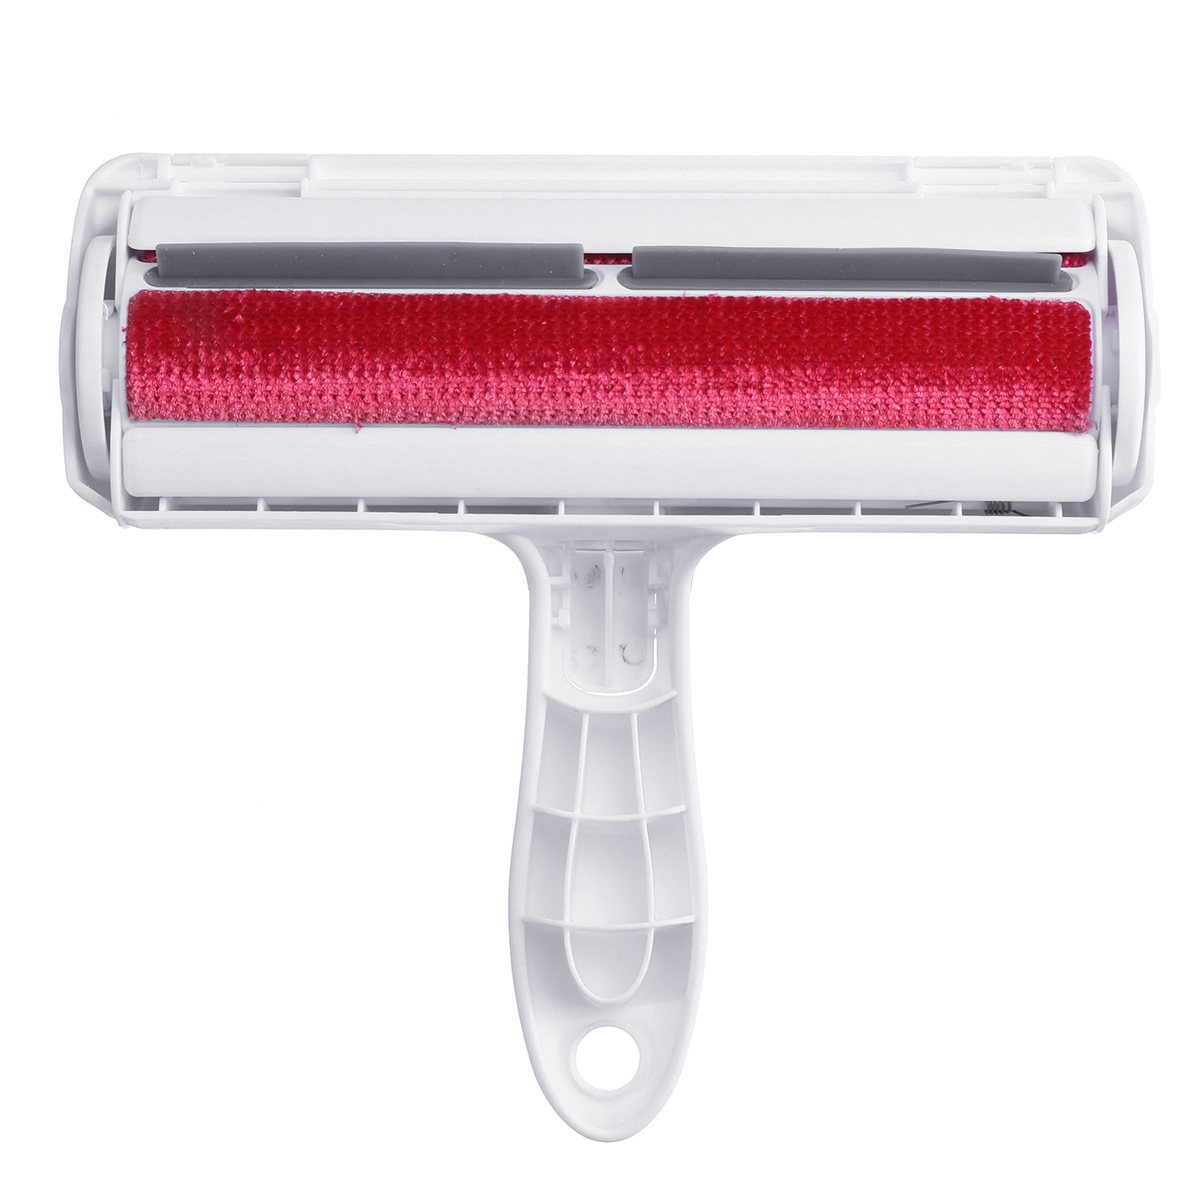 Reusable Pet Hair Remover Sofa Clothes Lint Cleaning Brush Dog Cat Fur Roller